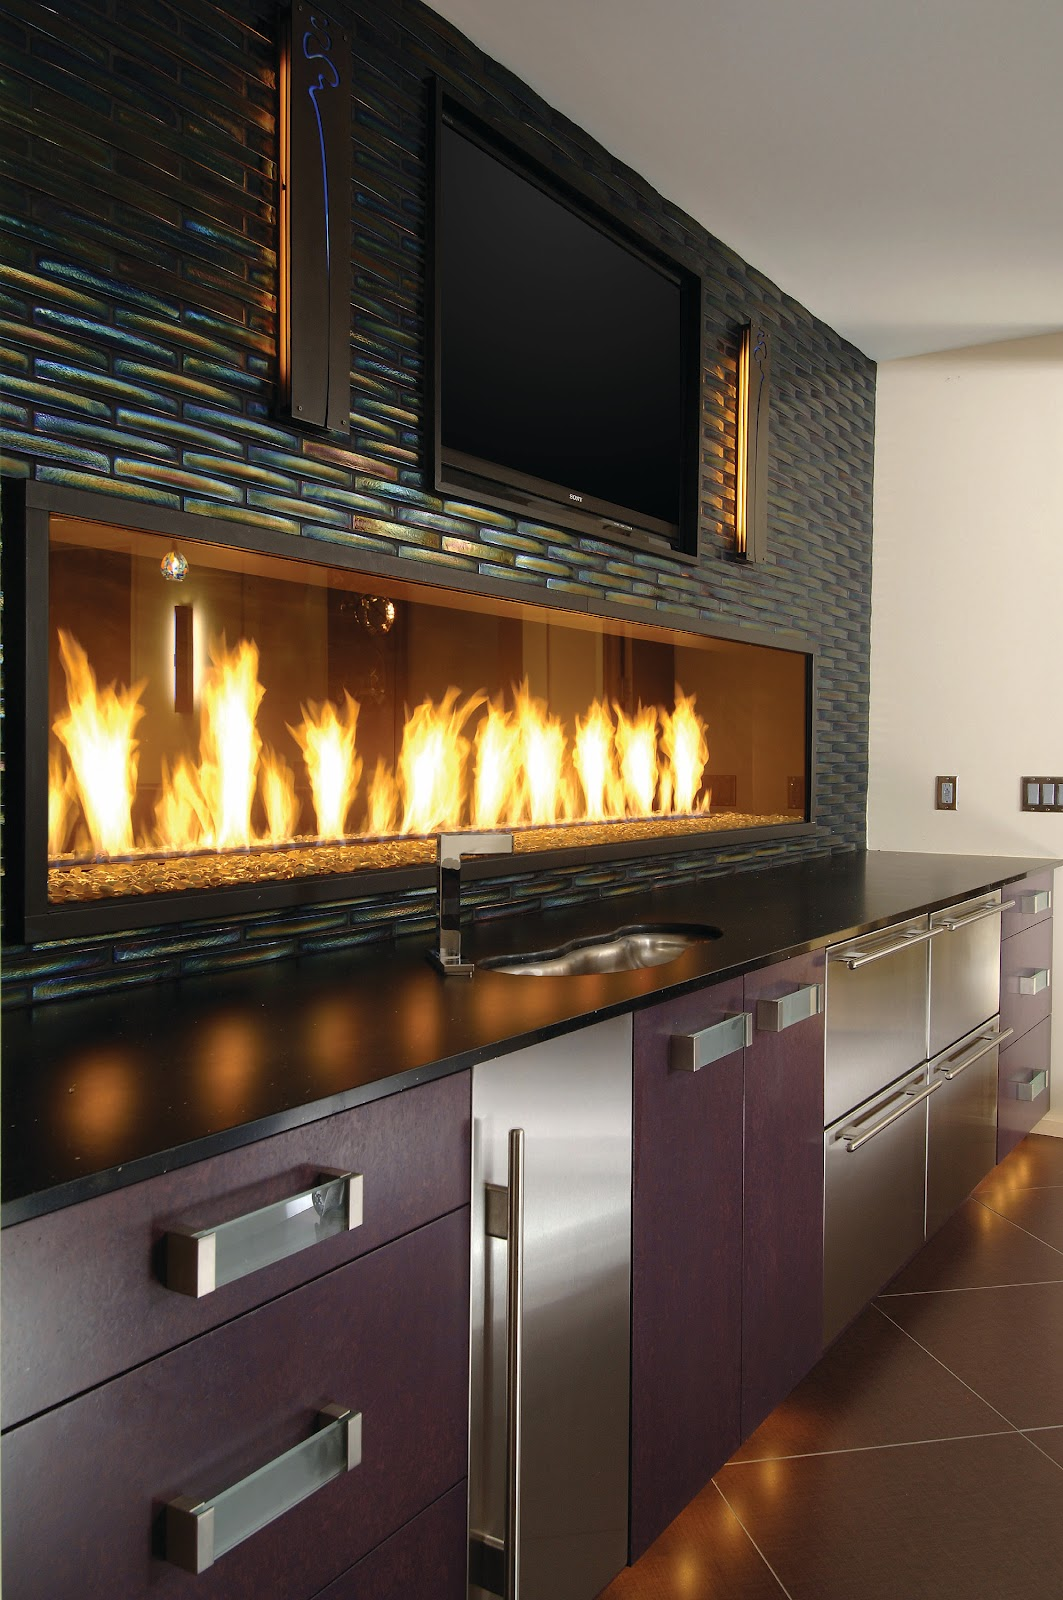 Alpentile Glass Tile Swimming Pools Fireplaces Take